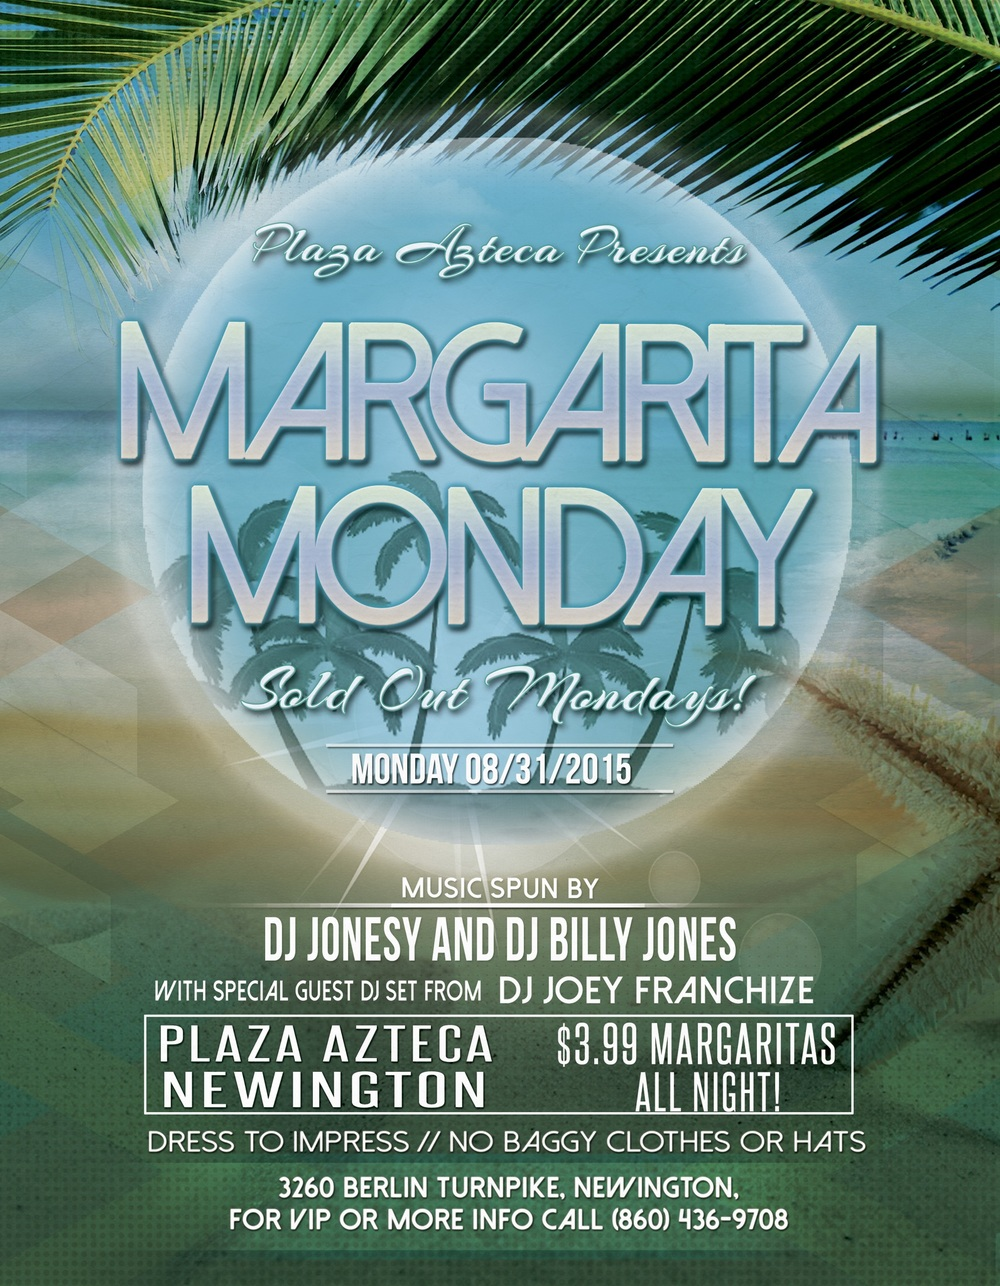 Monday, August 31st join us at Plaza Azteca in Newington, CT for Margarita Monday with music by JONESY,  Billy Jones  &  Hot 93.7 's  J  oey Franchize .    Music starts at 9 pm.  $4 Margaritas all night long! Shout to  Albdoesitall .